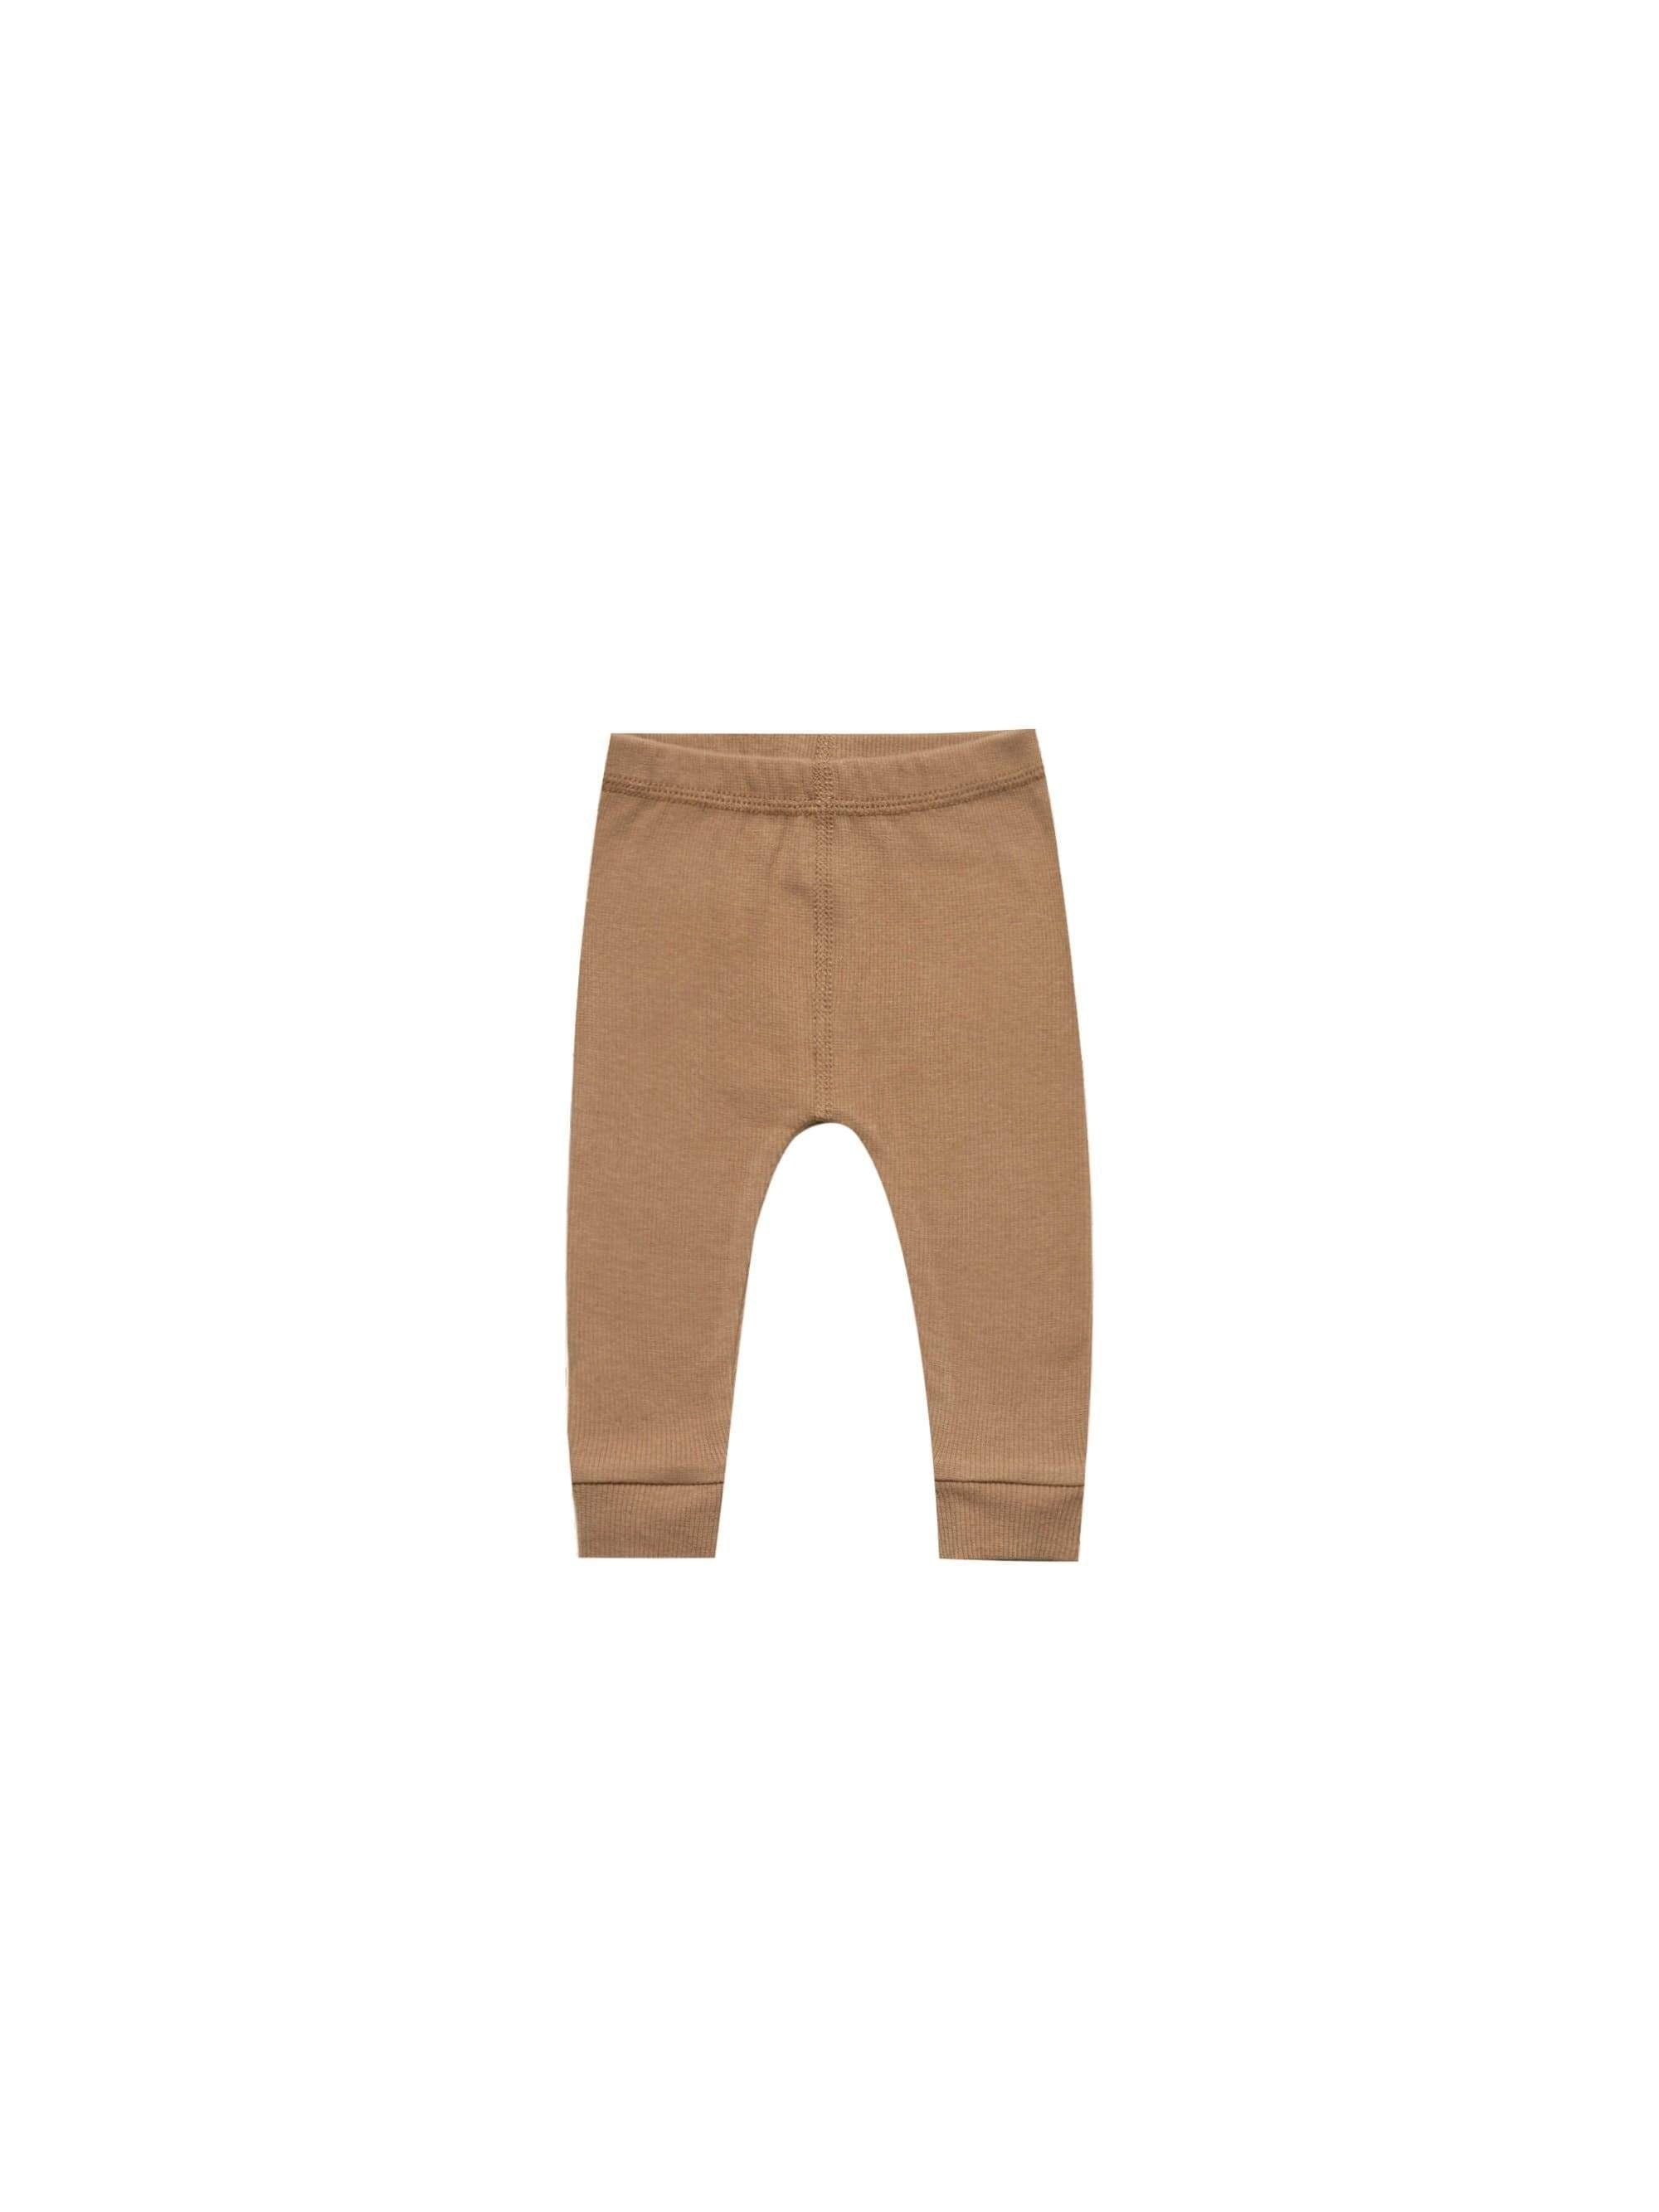 Quincy Mae Pants 18-24 / Copper Quincy Mae Ribbed Leggings